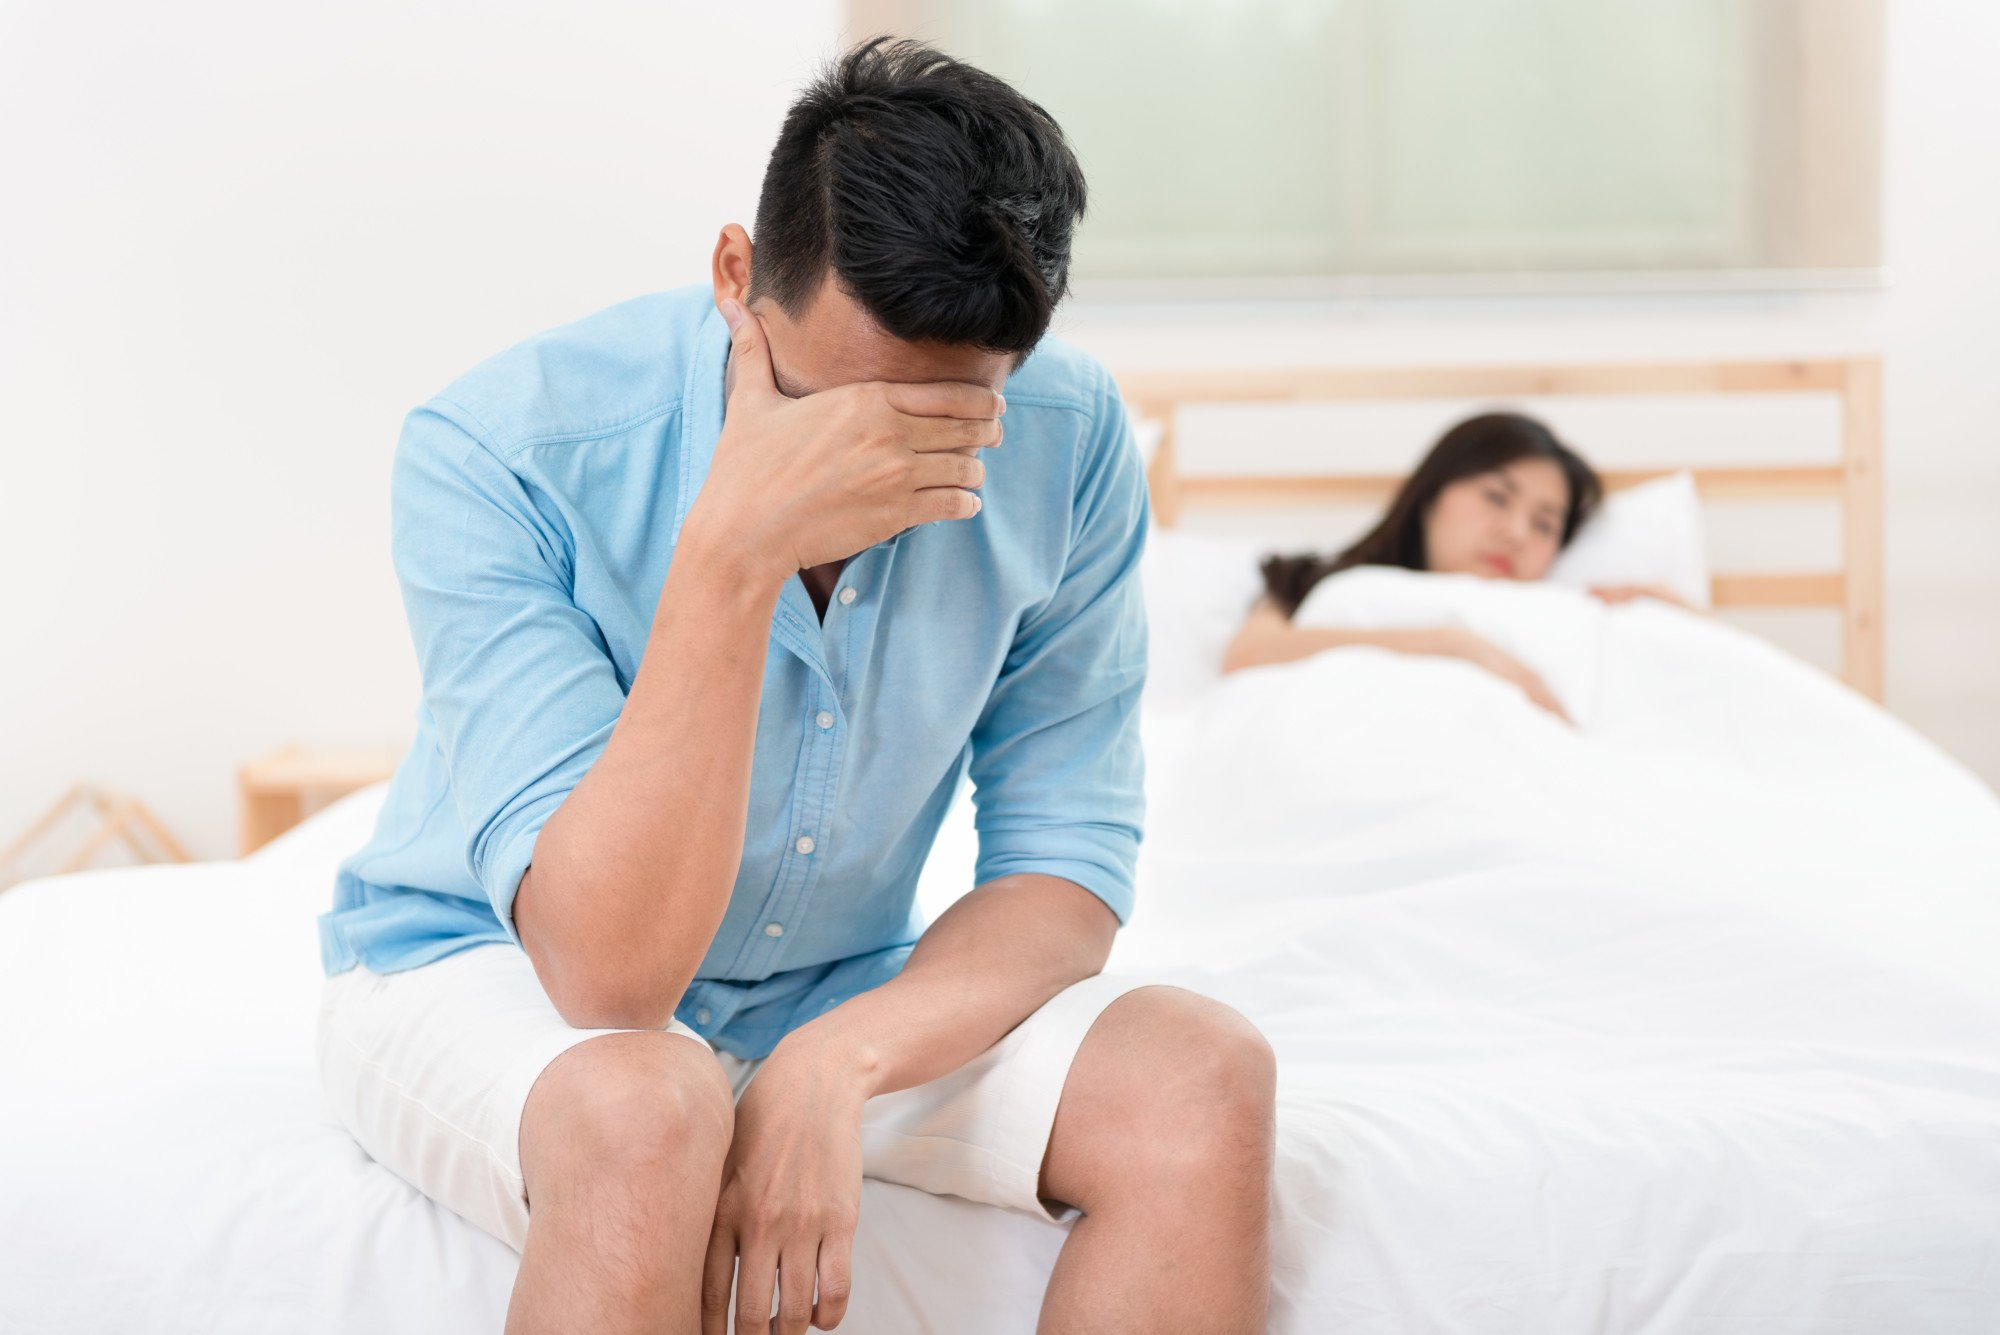 So You're Impotent: What Can You Do About It?